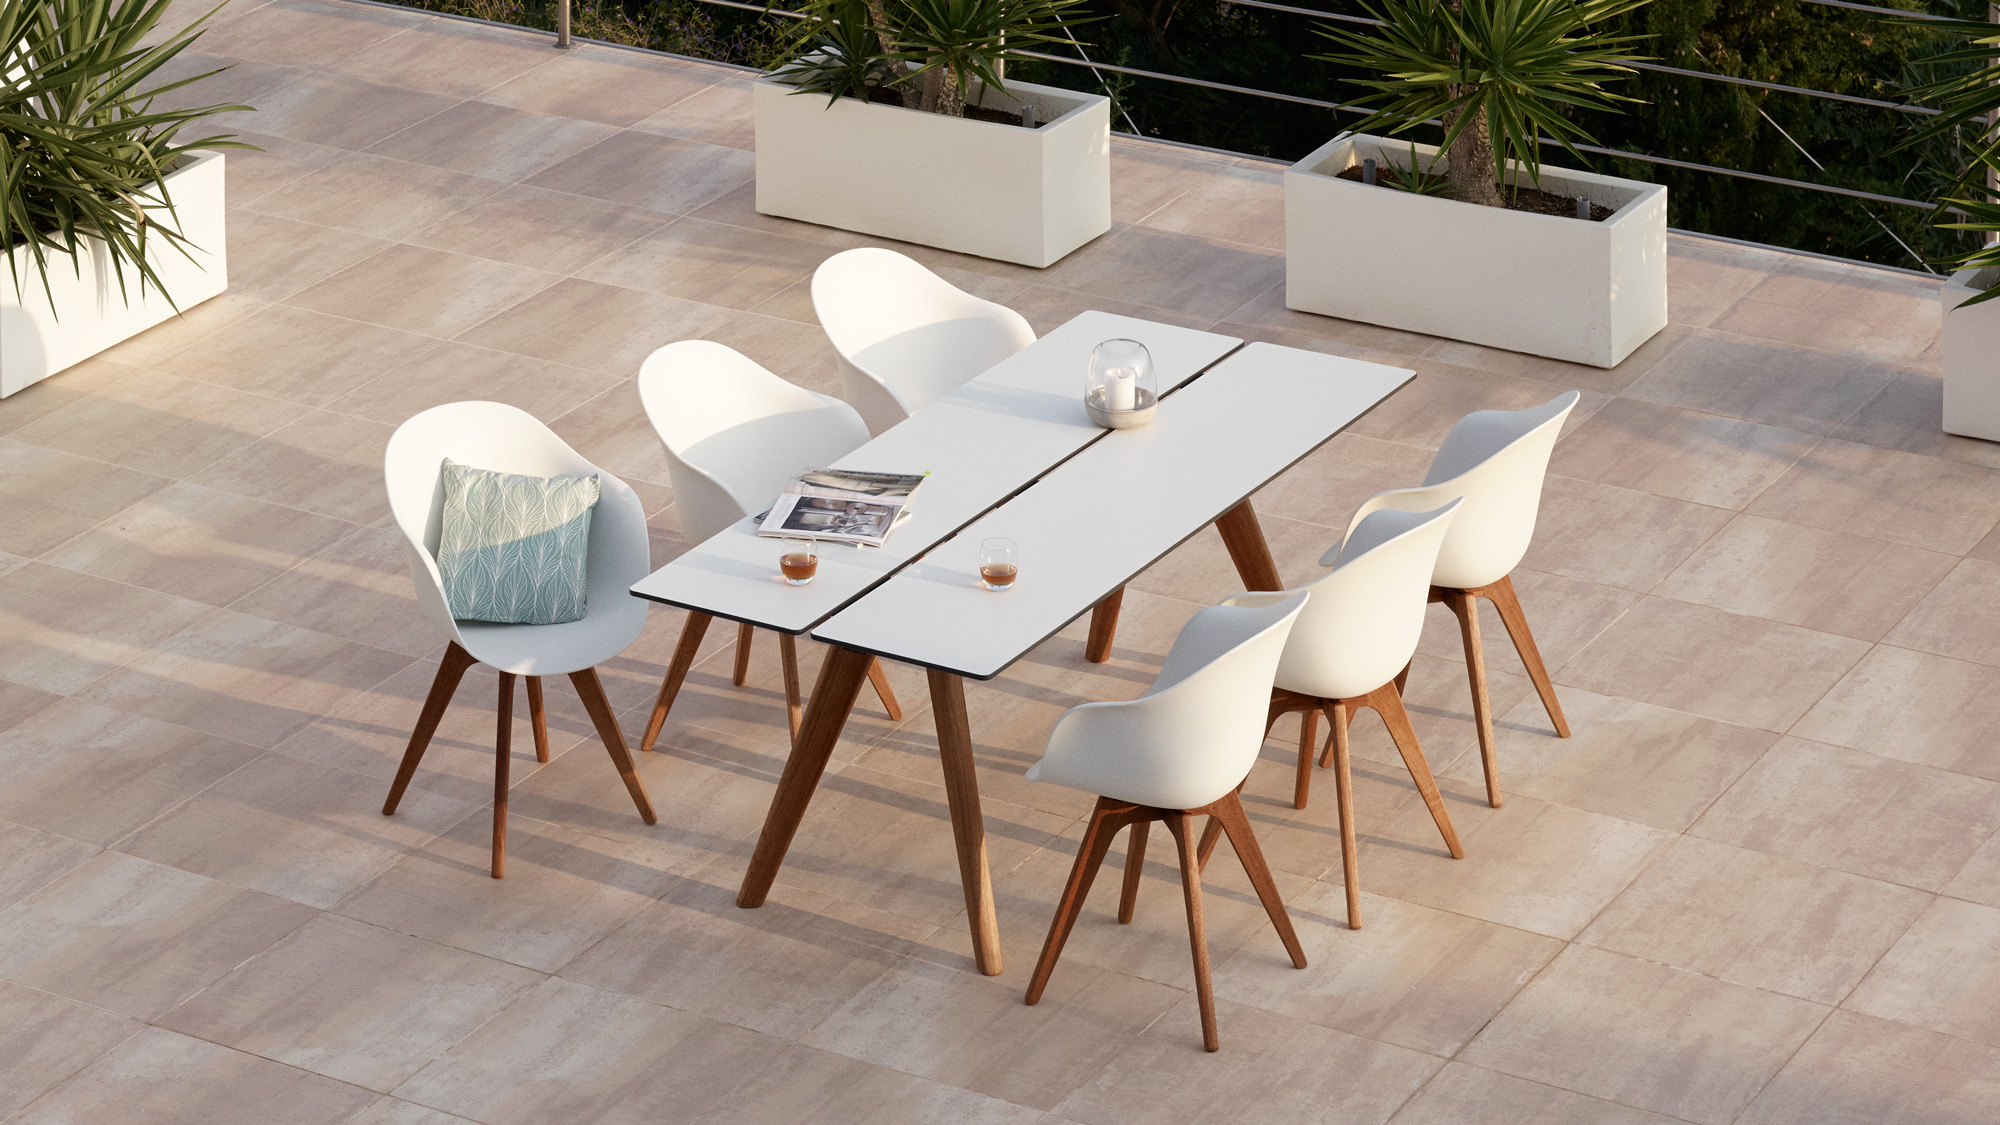 White outdoor Adelaide dining table and chairs with eucalyptus legs